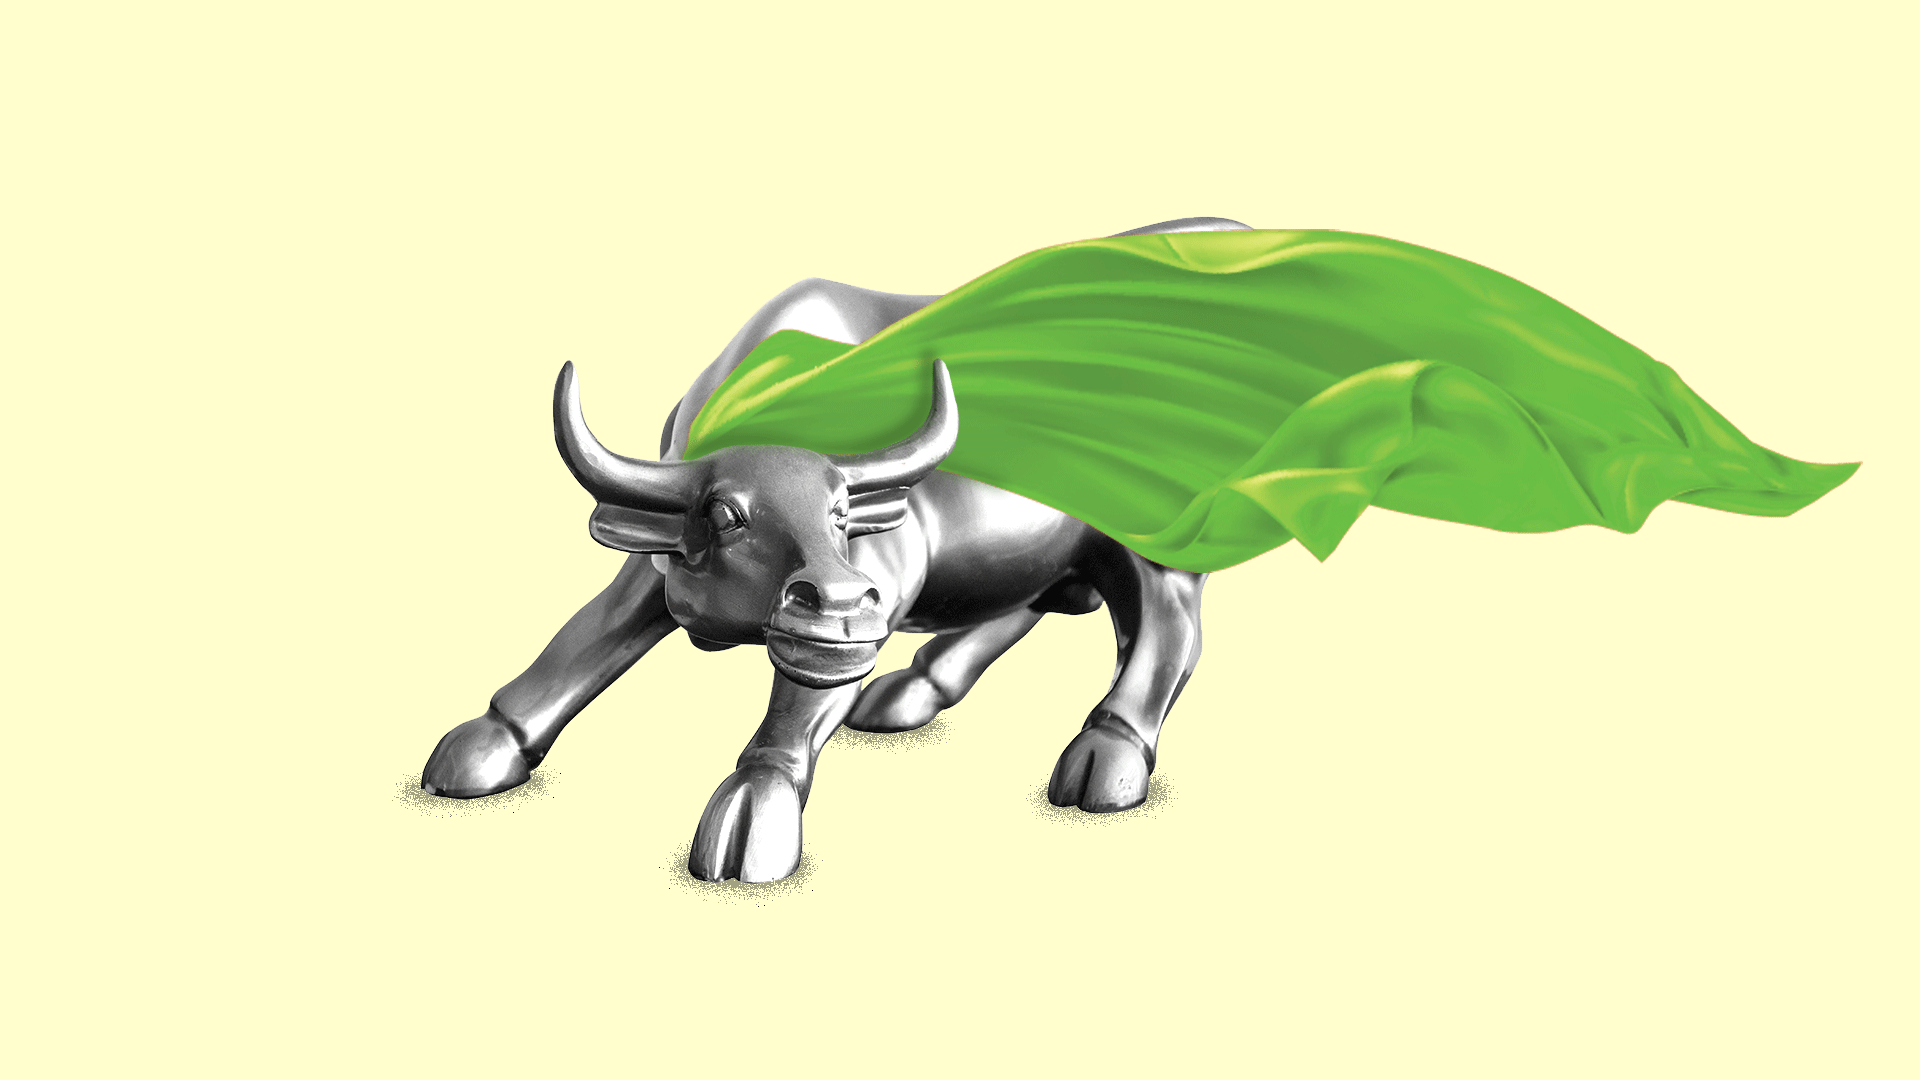 Illustration of the Wall Street bull with a green cape, mimicking the Beyond Meat logo